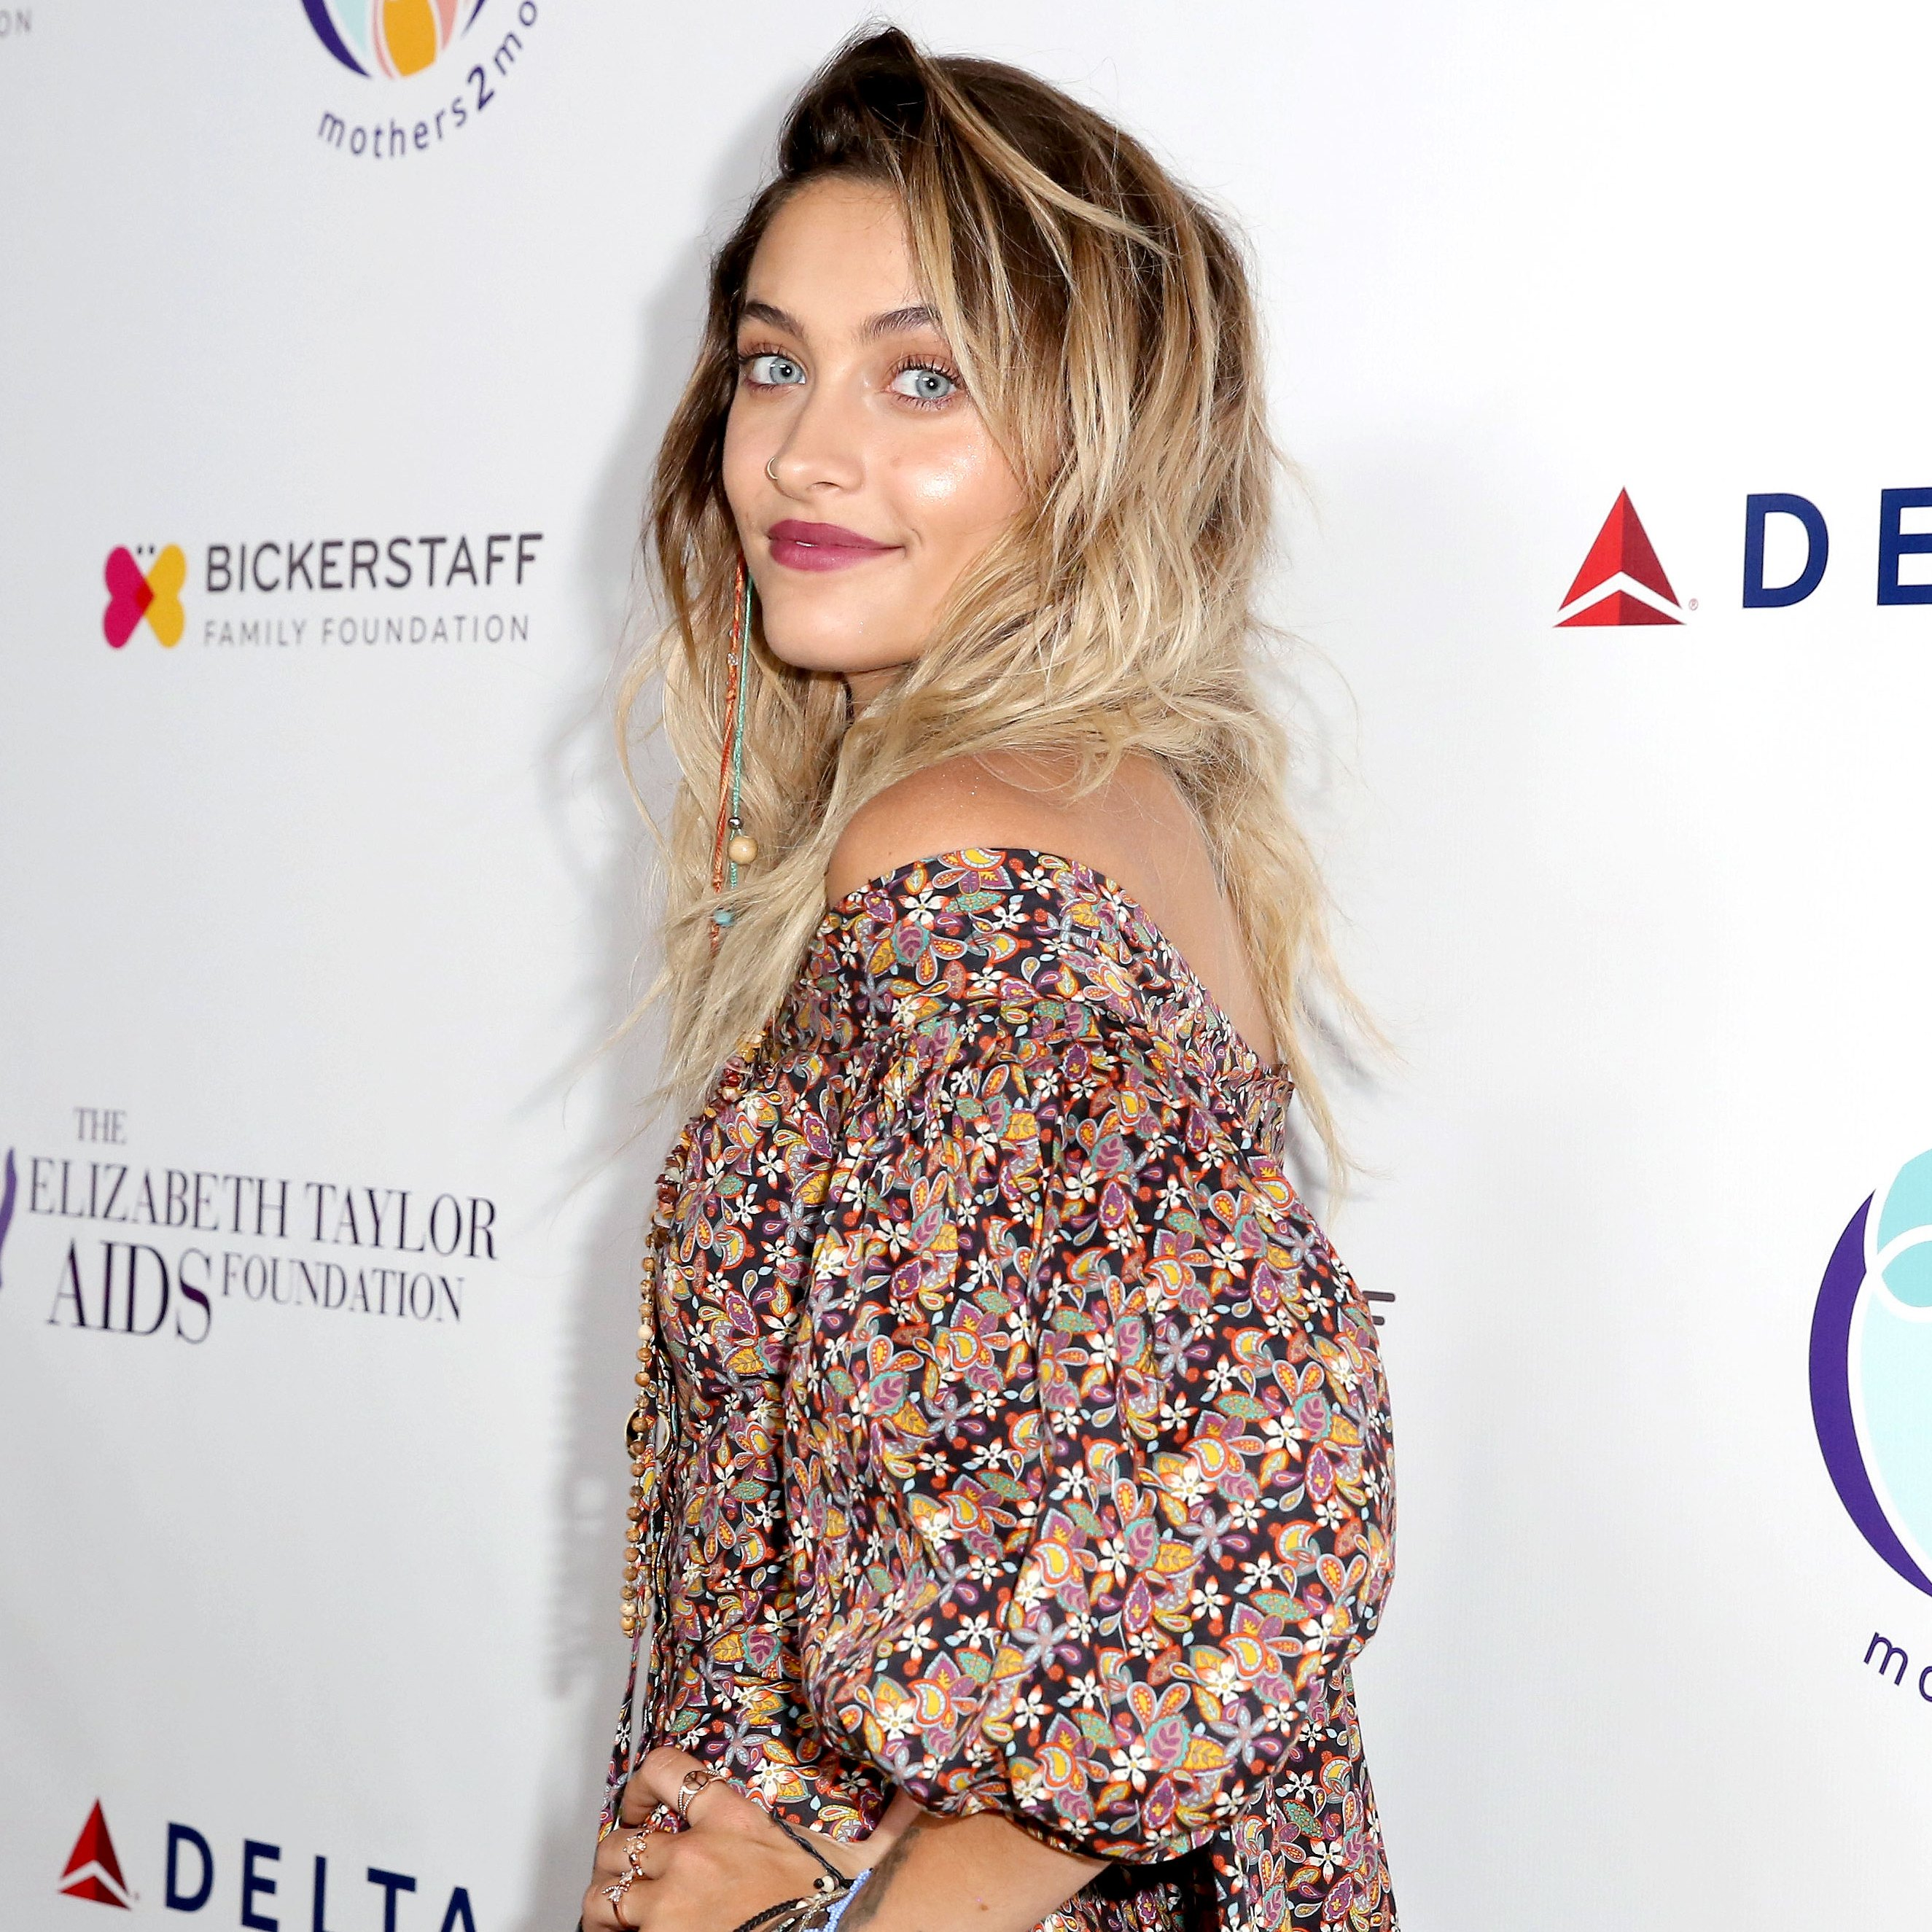 Paris Jackson attends The Elizabeth Taylor AIDS Foundation and mothers2mothers dinner